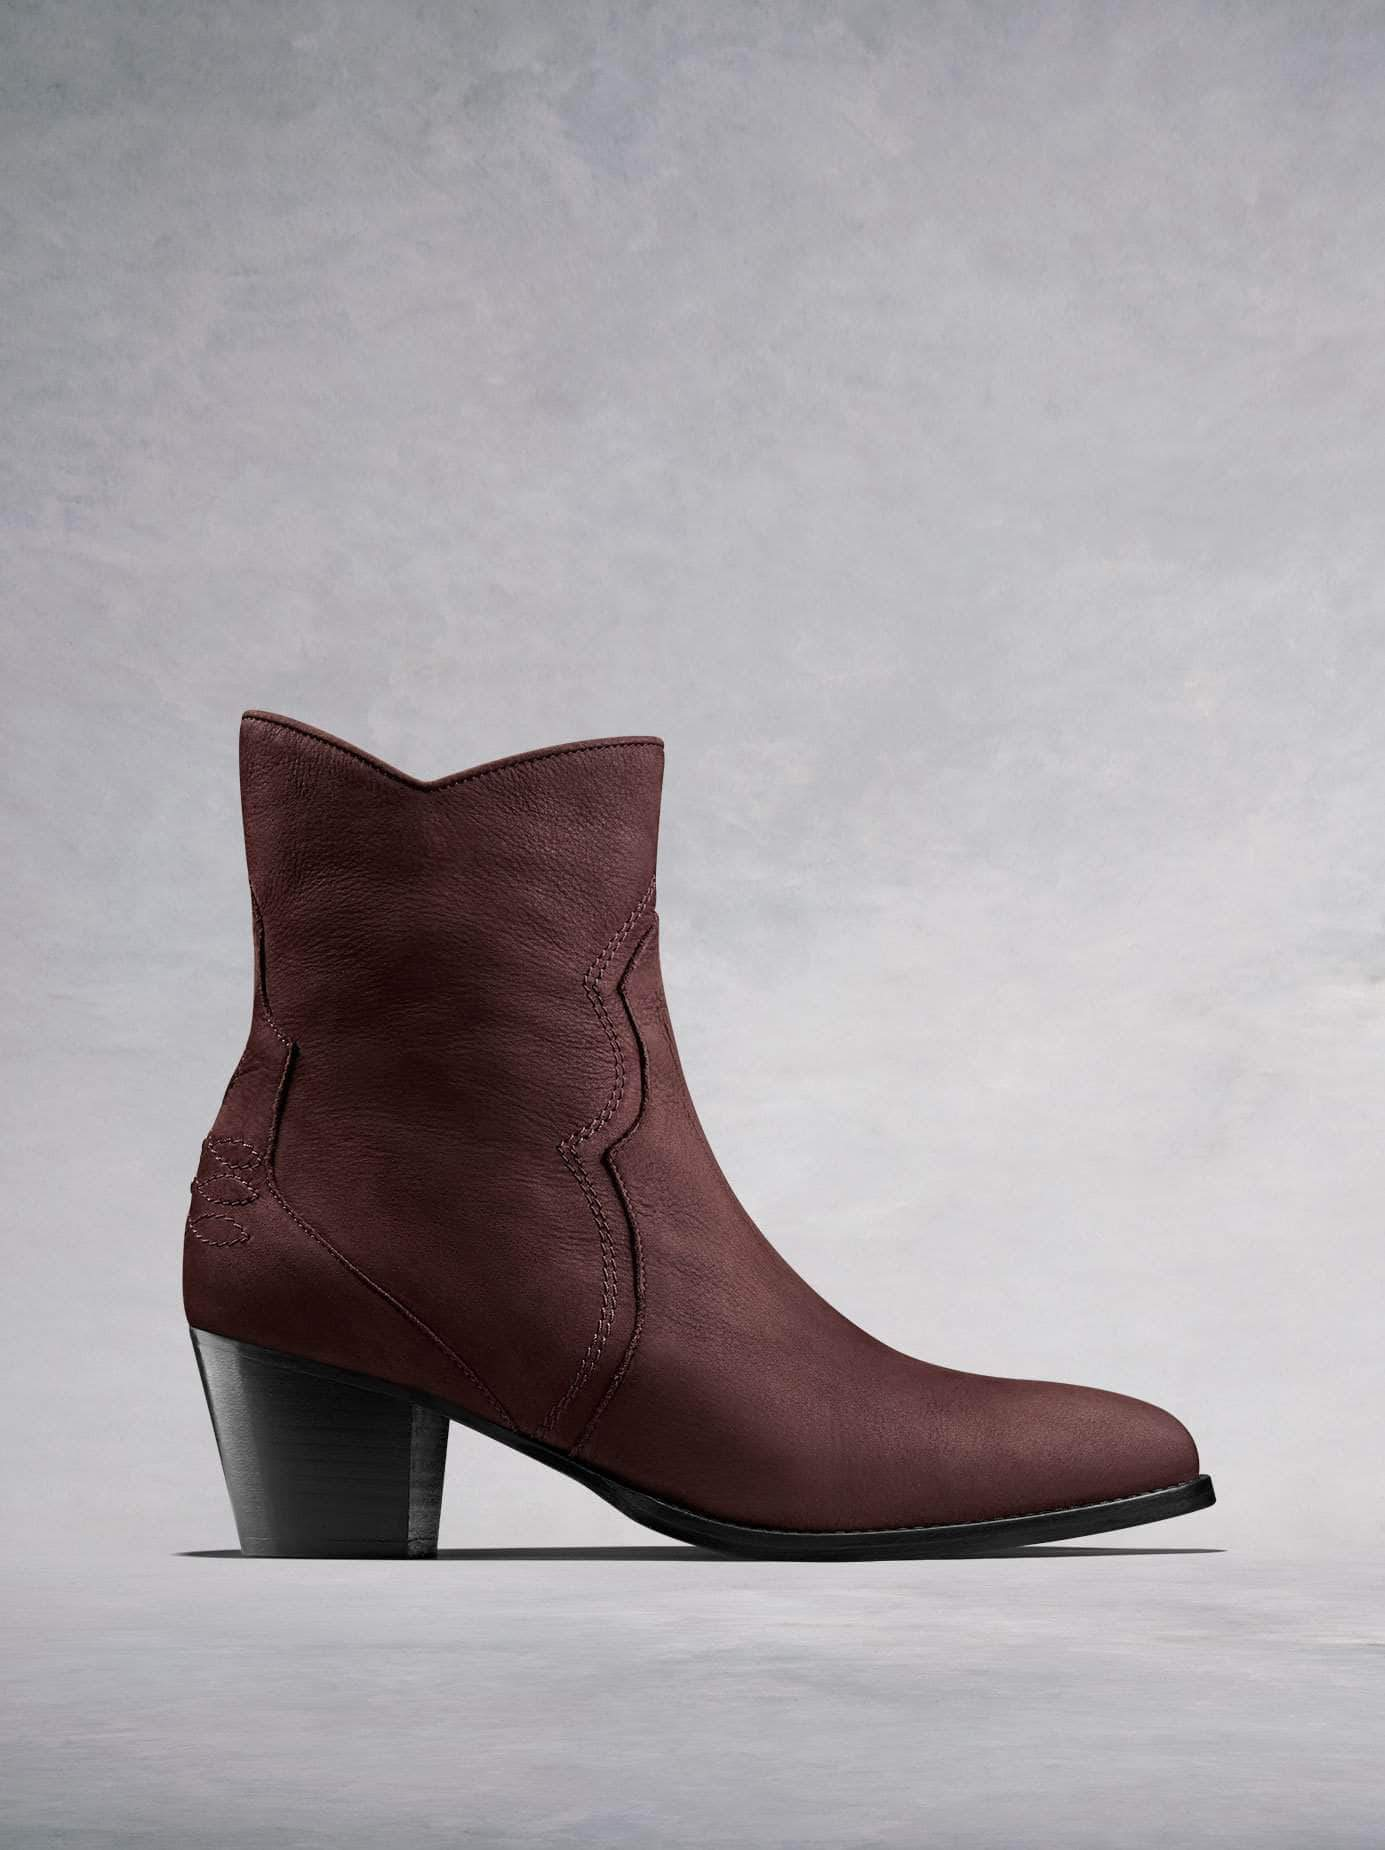 Channel the western trend with our Bexley burgundy nubuck leather ankle boot. Available in our standard or wide fit.